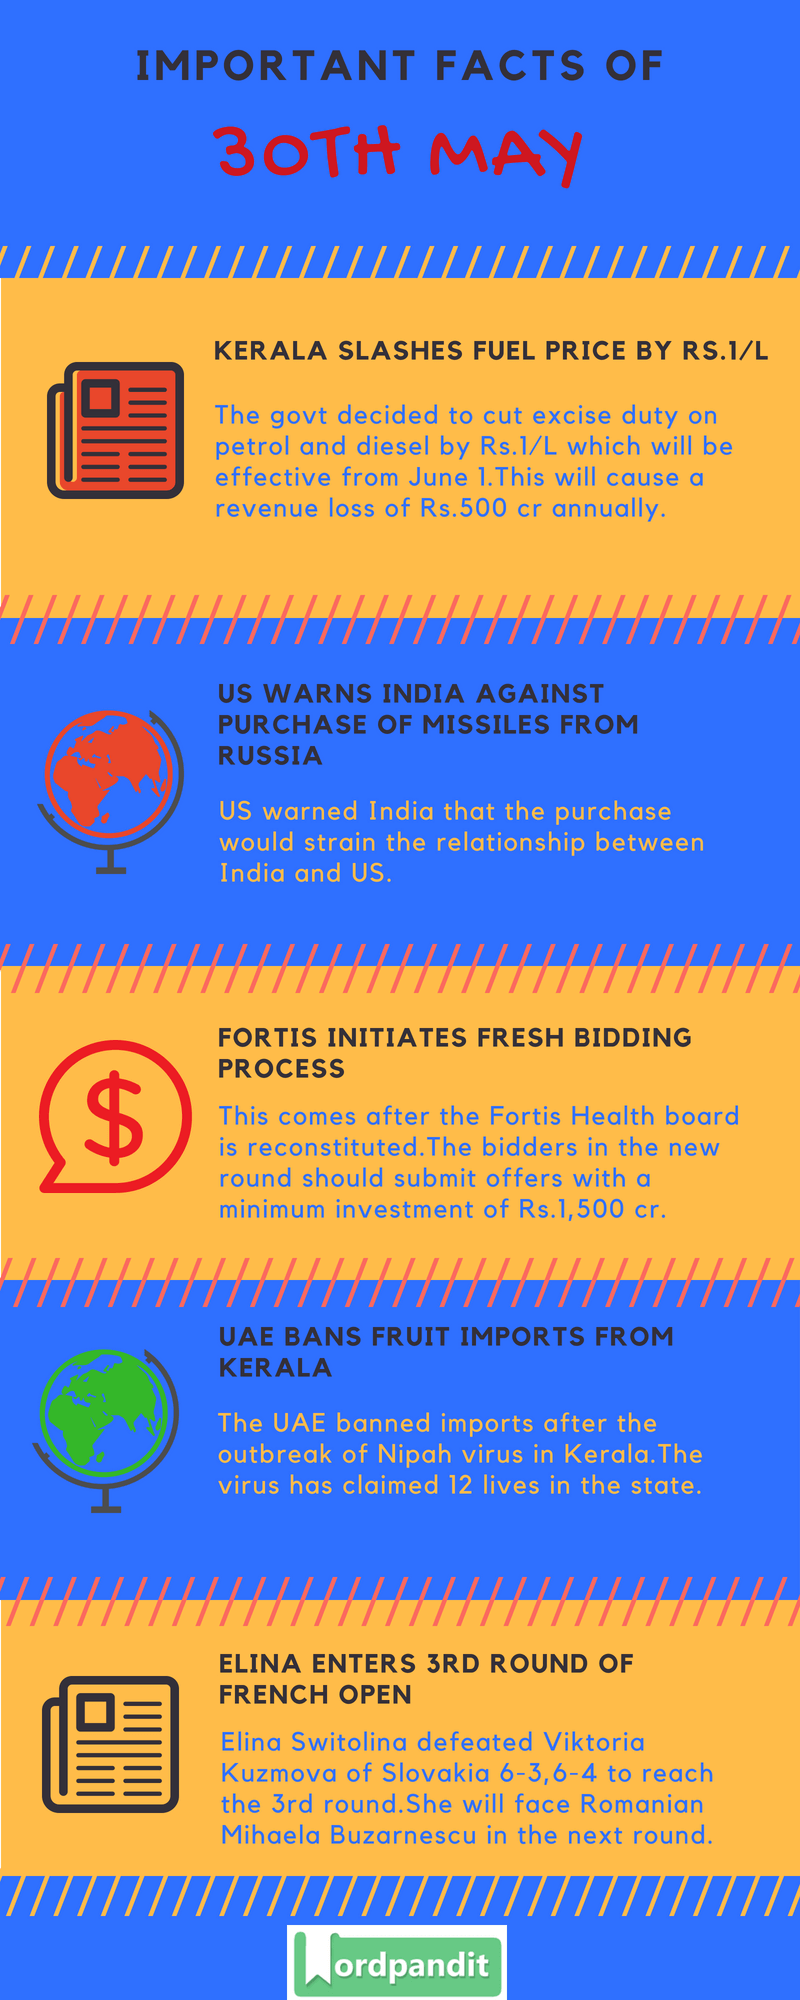 Daily Current Affairs 30 May 2018 Current Affairs Quiz May 30 2018 Current Affairs Infographic